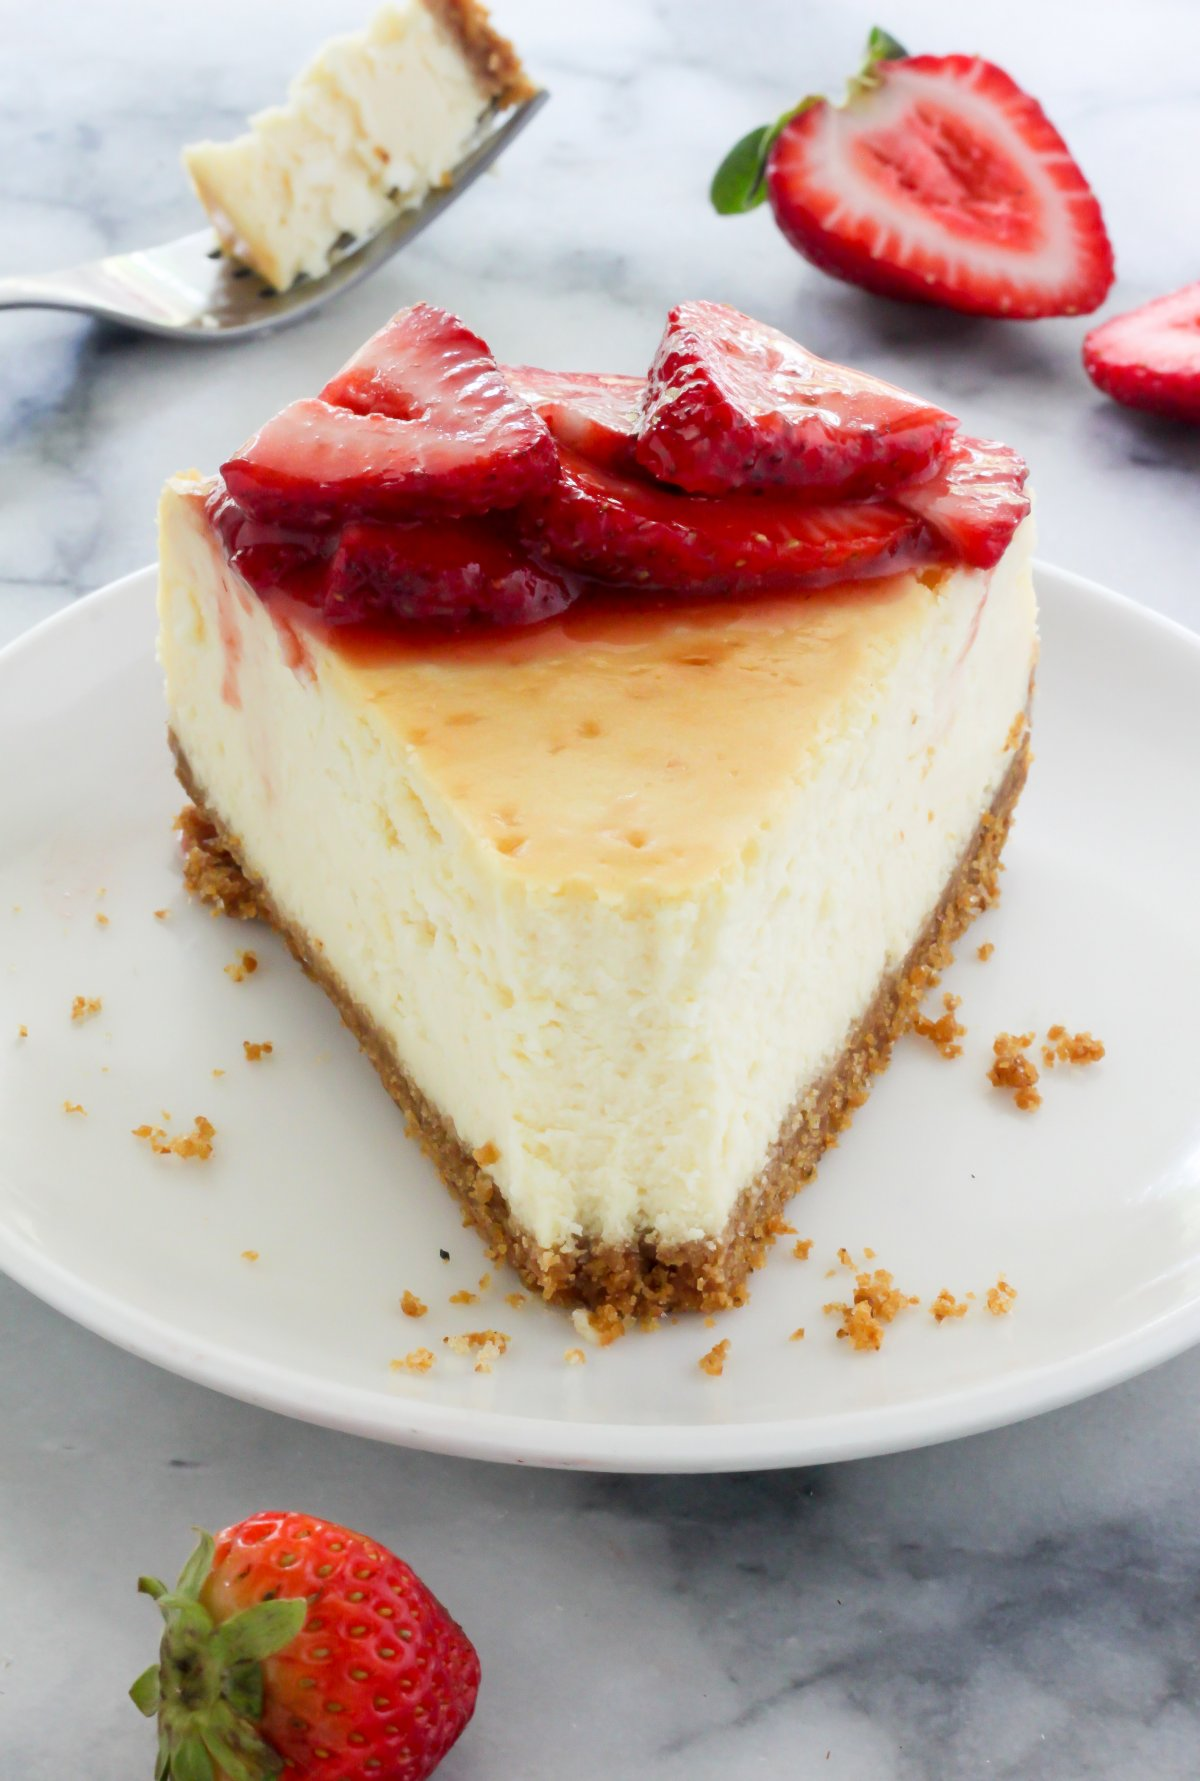 Rich and creamy, this classic New York-Style Cheesecake gets gussied ...